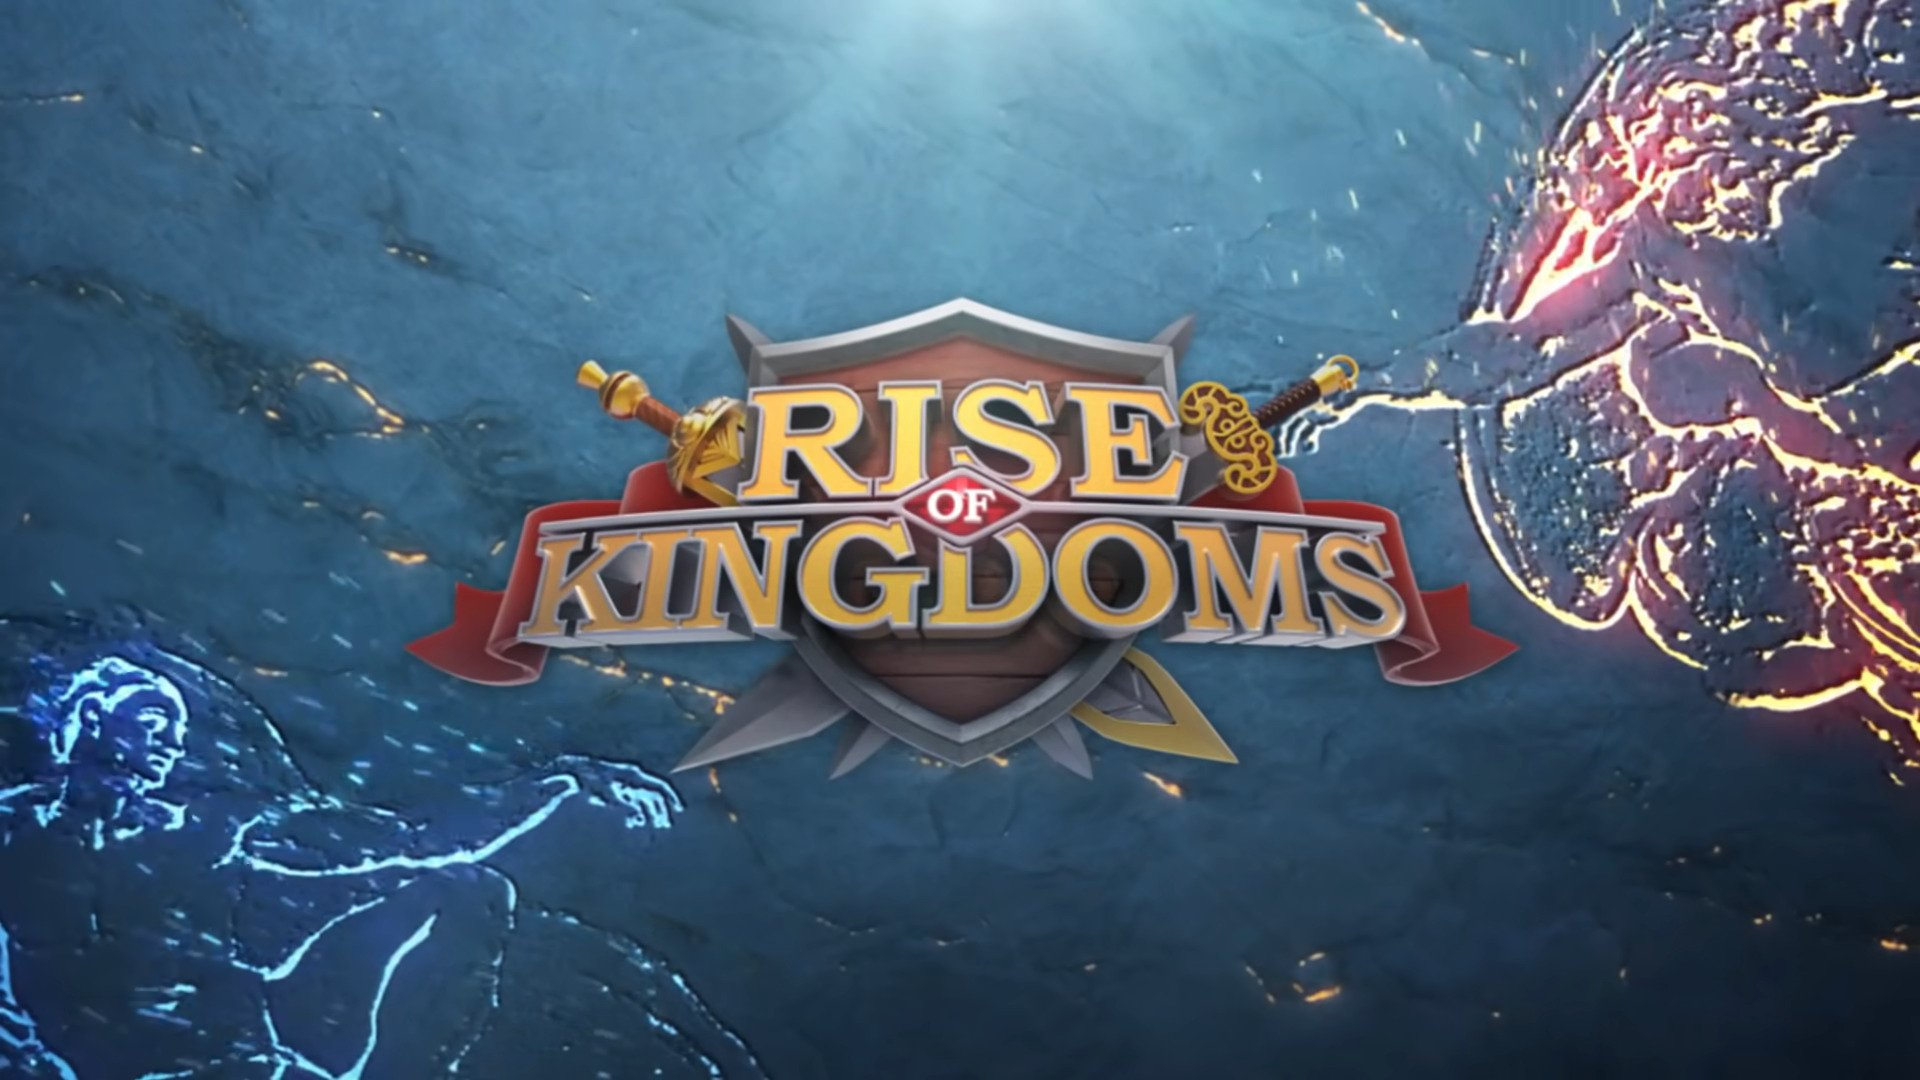 Disturbing Rise Of Kingdoms Advertisement On YouTube Makes Light Of Rape And Violence